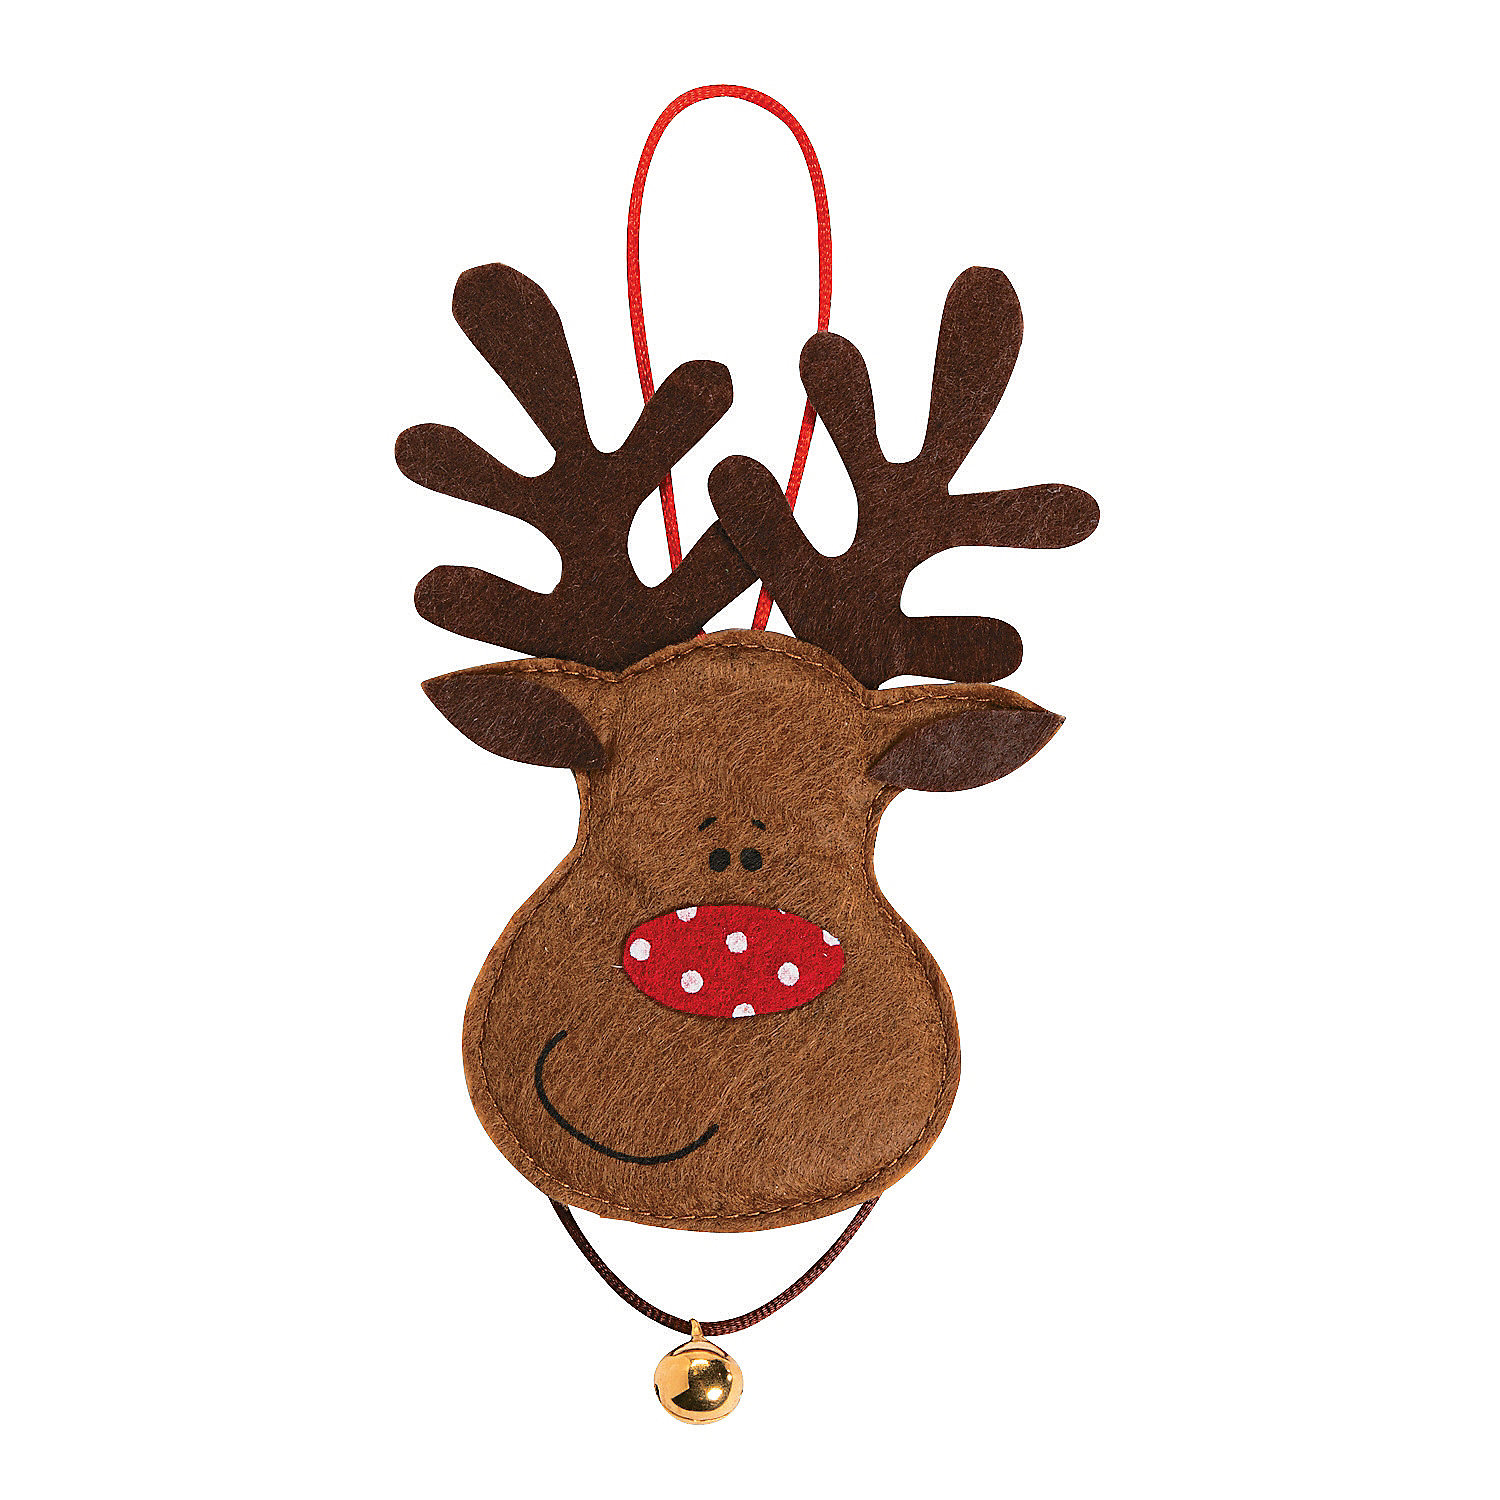 Reindeer ornament craft kit ornament crafts adult crafts for Reindeer project